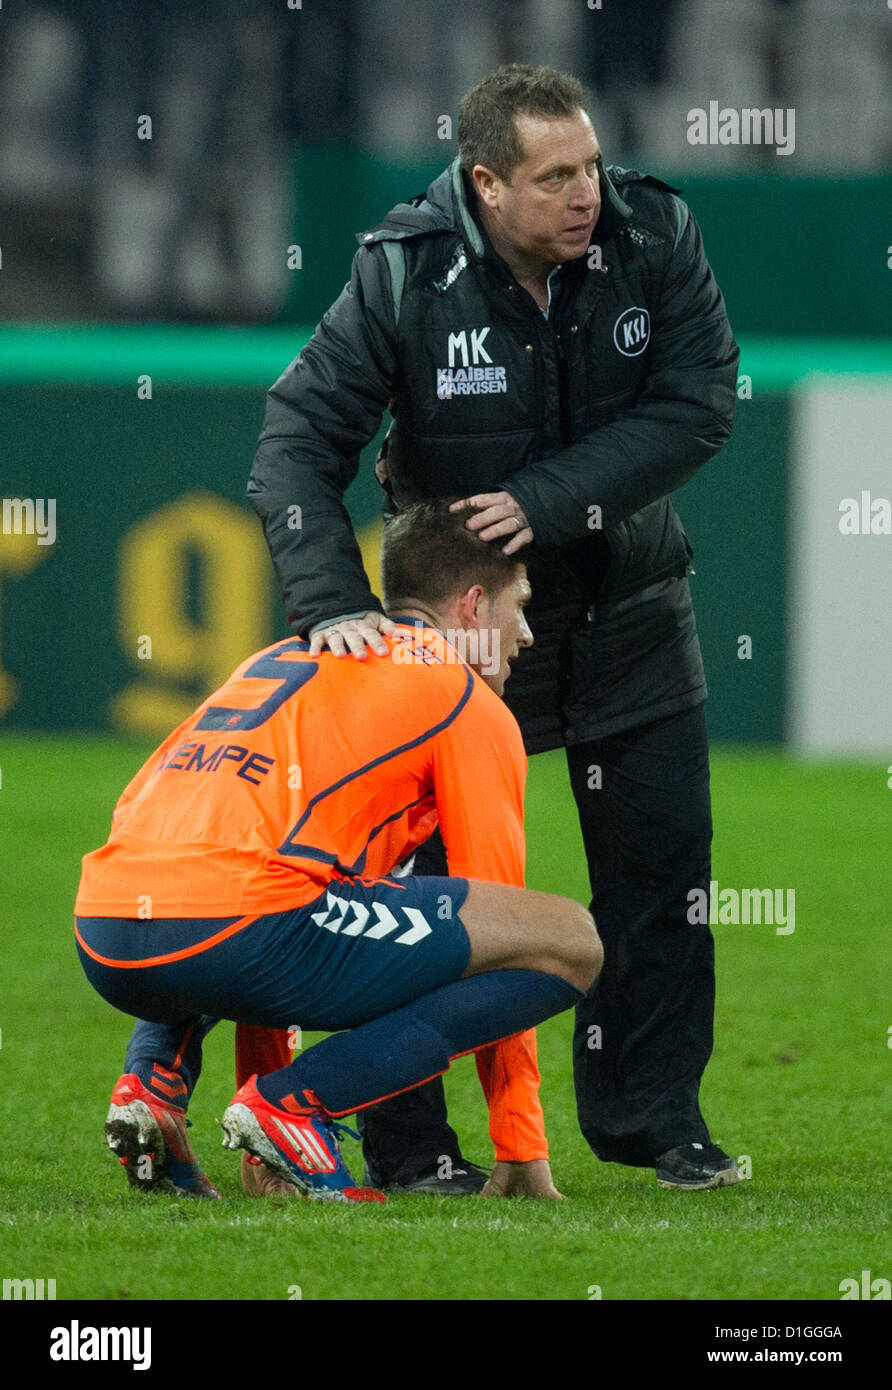 Karlsruhe's head coach Markus Kauczinski talks to his player Dennis Krempe after the DFB Cup round of sixteen - Stock Image